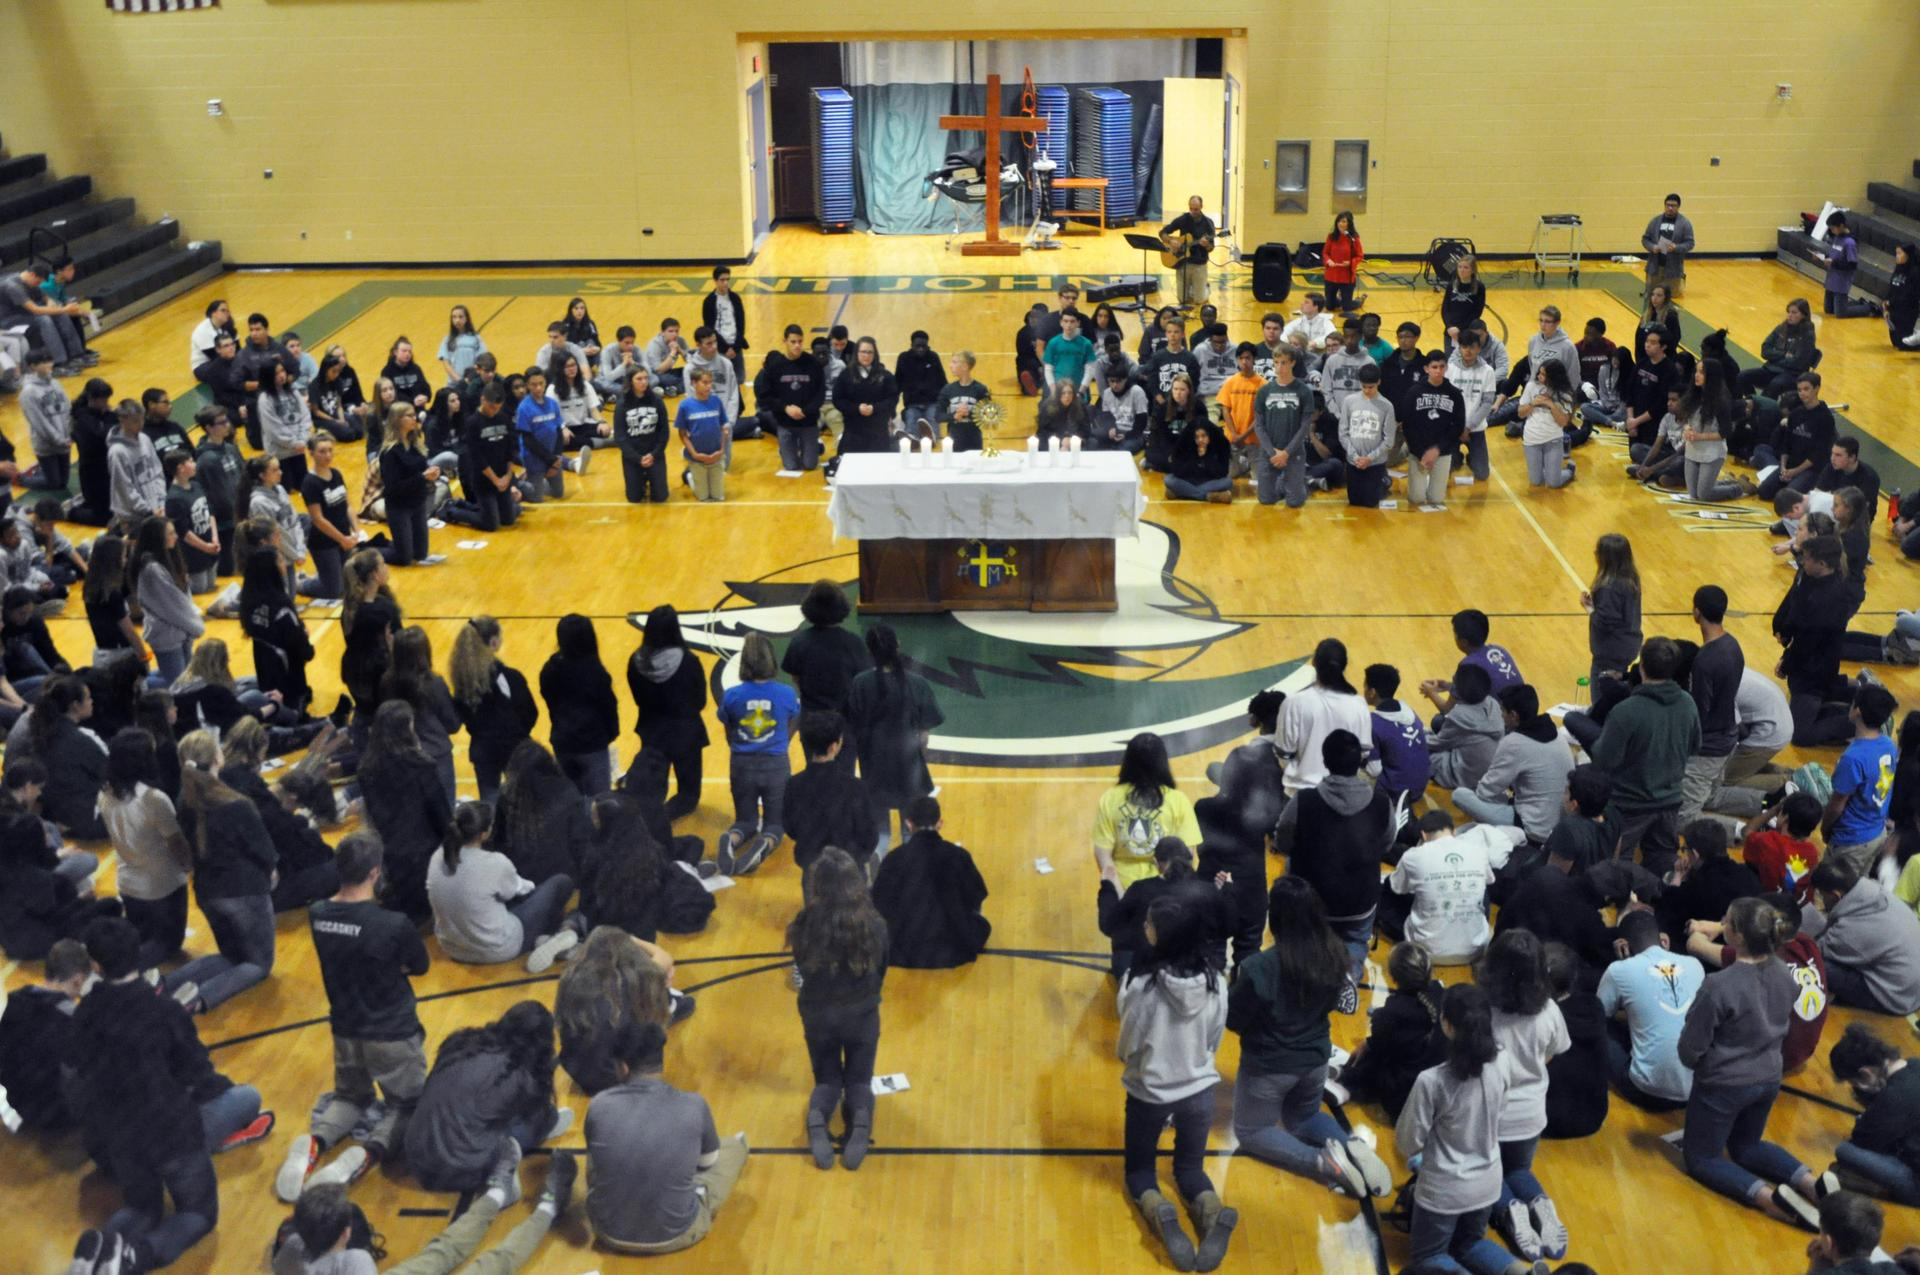 The whole school gathered for adoration